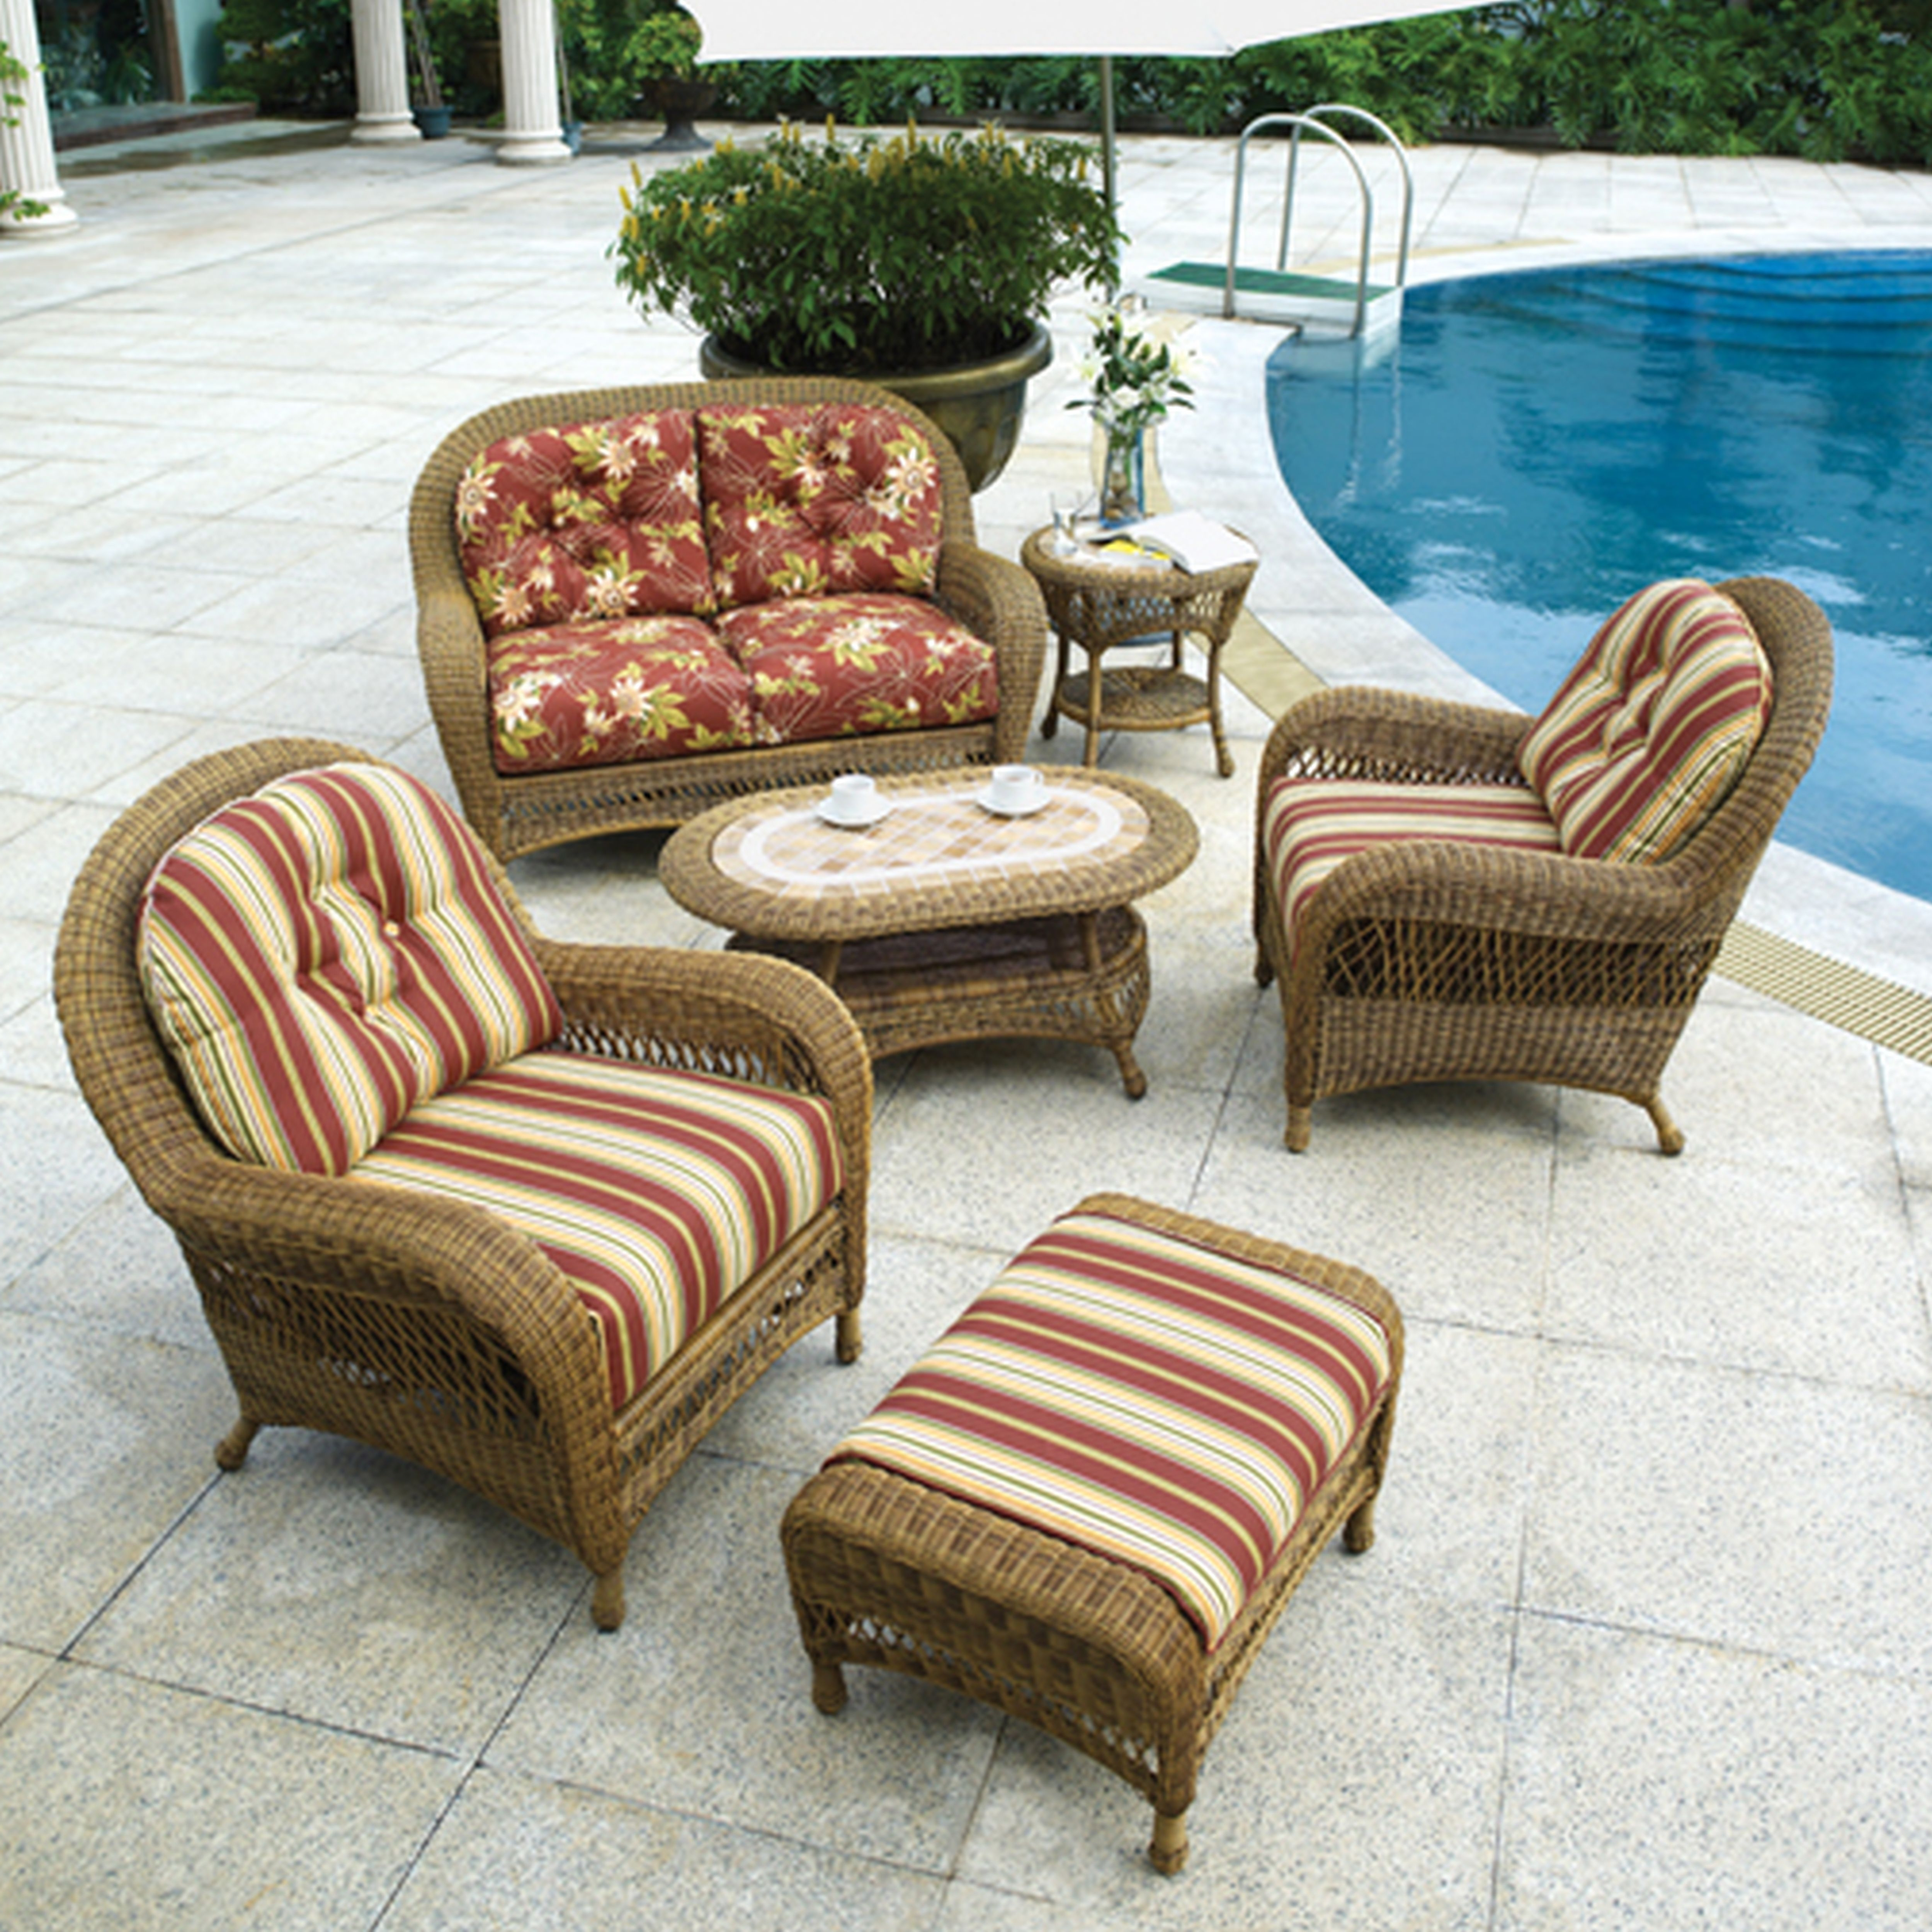 Chair : Magnificent Wicker Chair With Ottoman Additional Styles Of In Current Patio Conversation Sets With Ottoman (View 2 of 15)